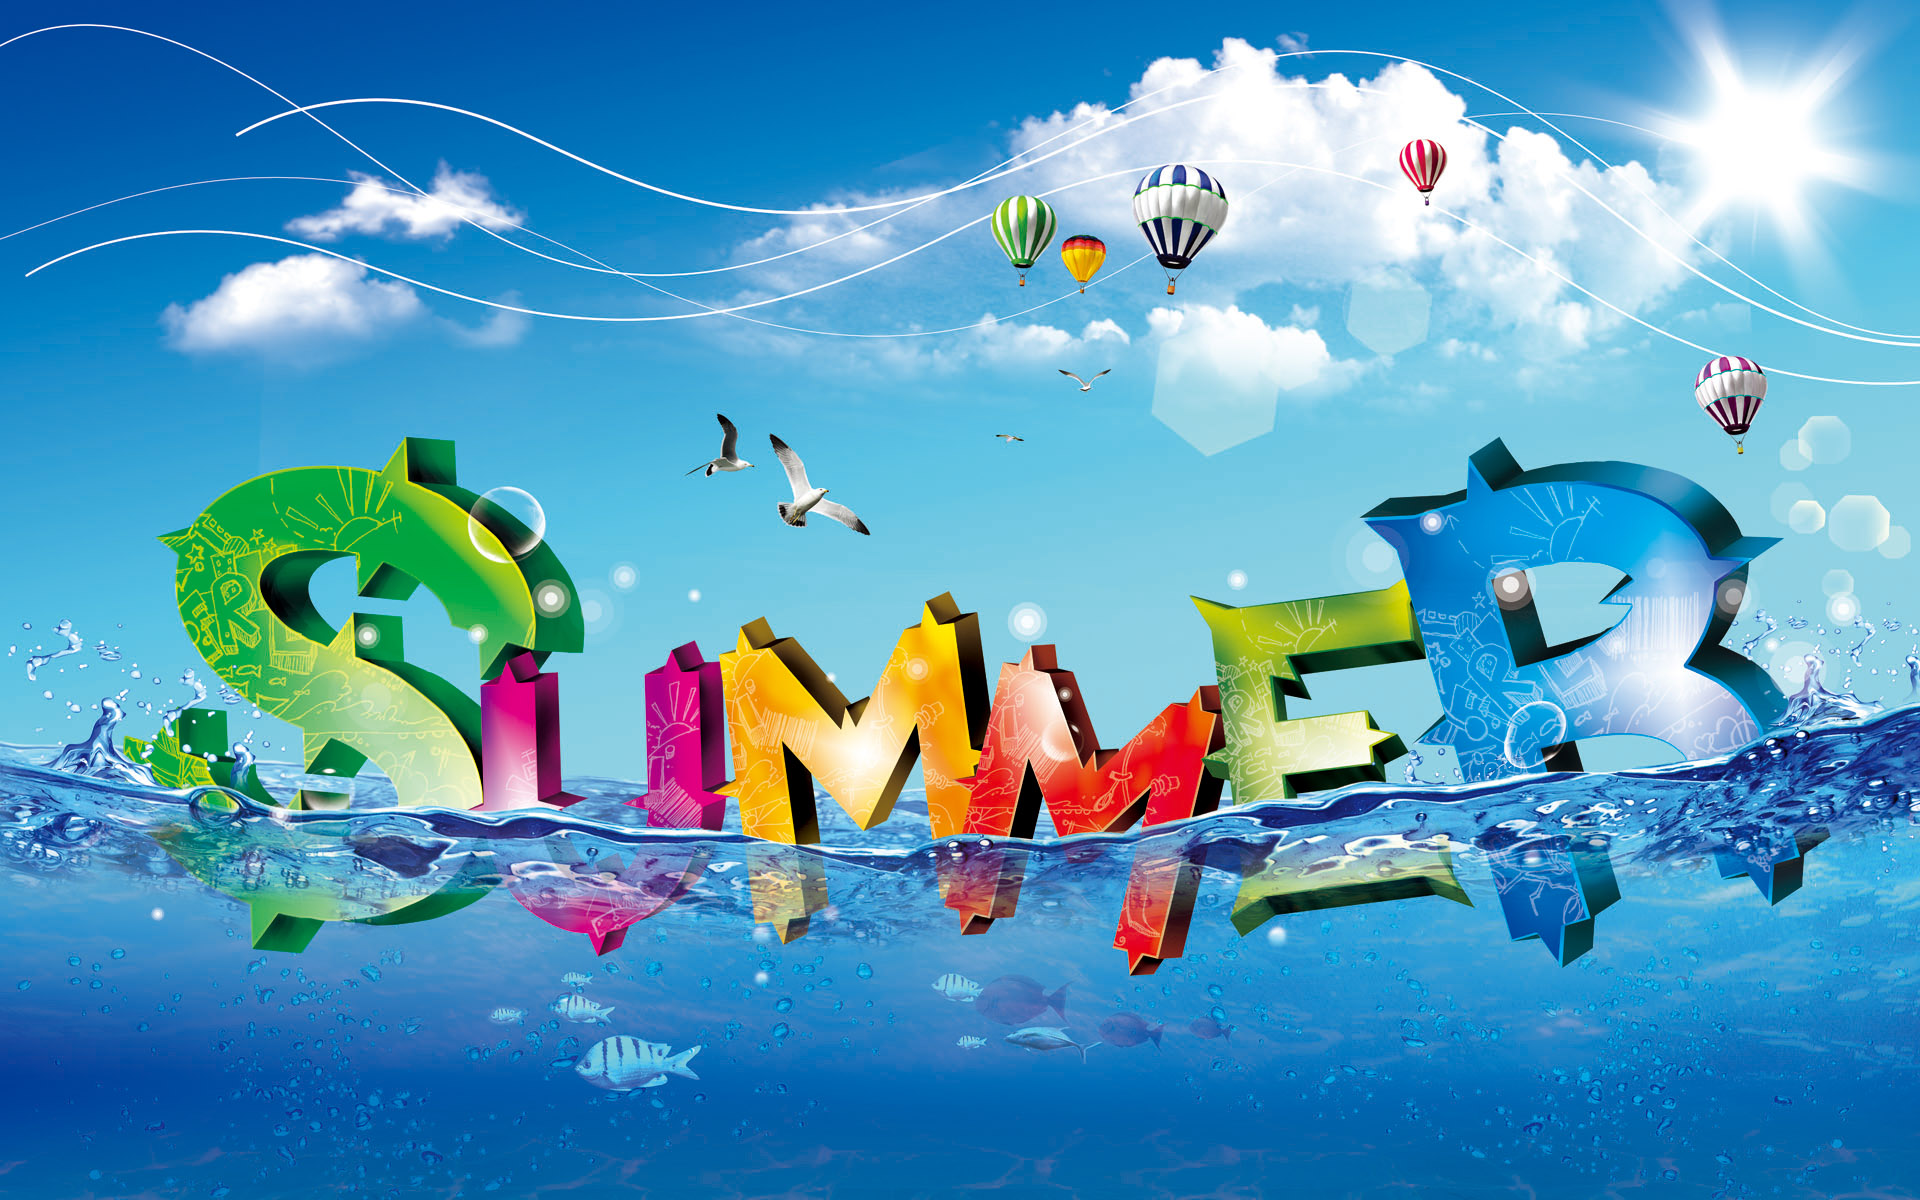 Download the Summer Wallpaper Summer iPhone Wallpaper 1920x1200